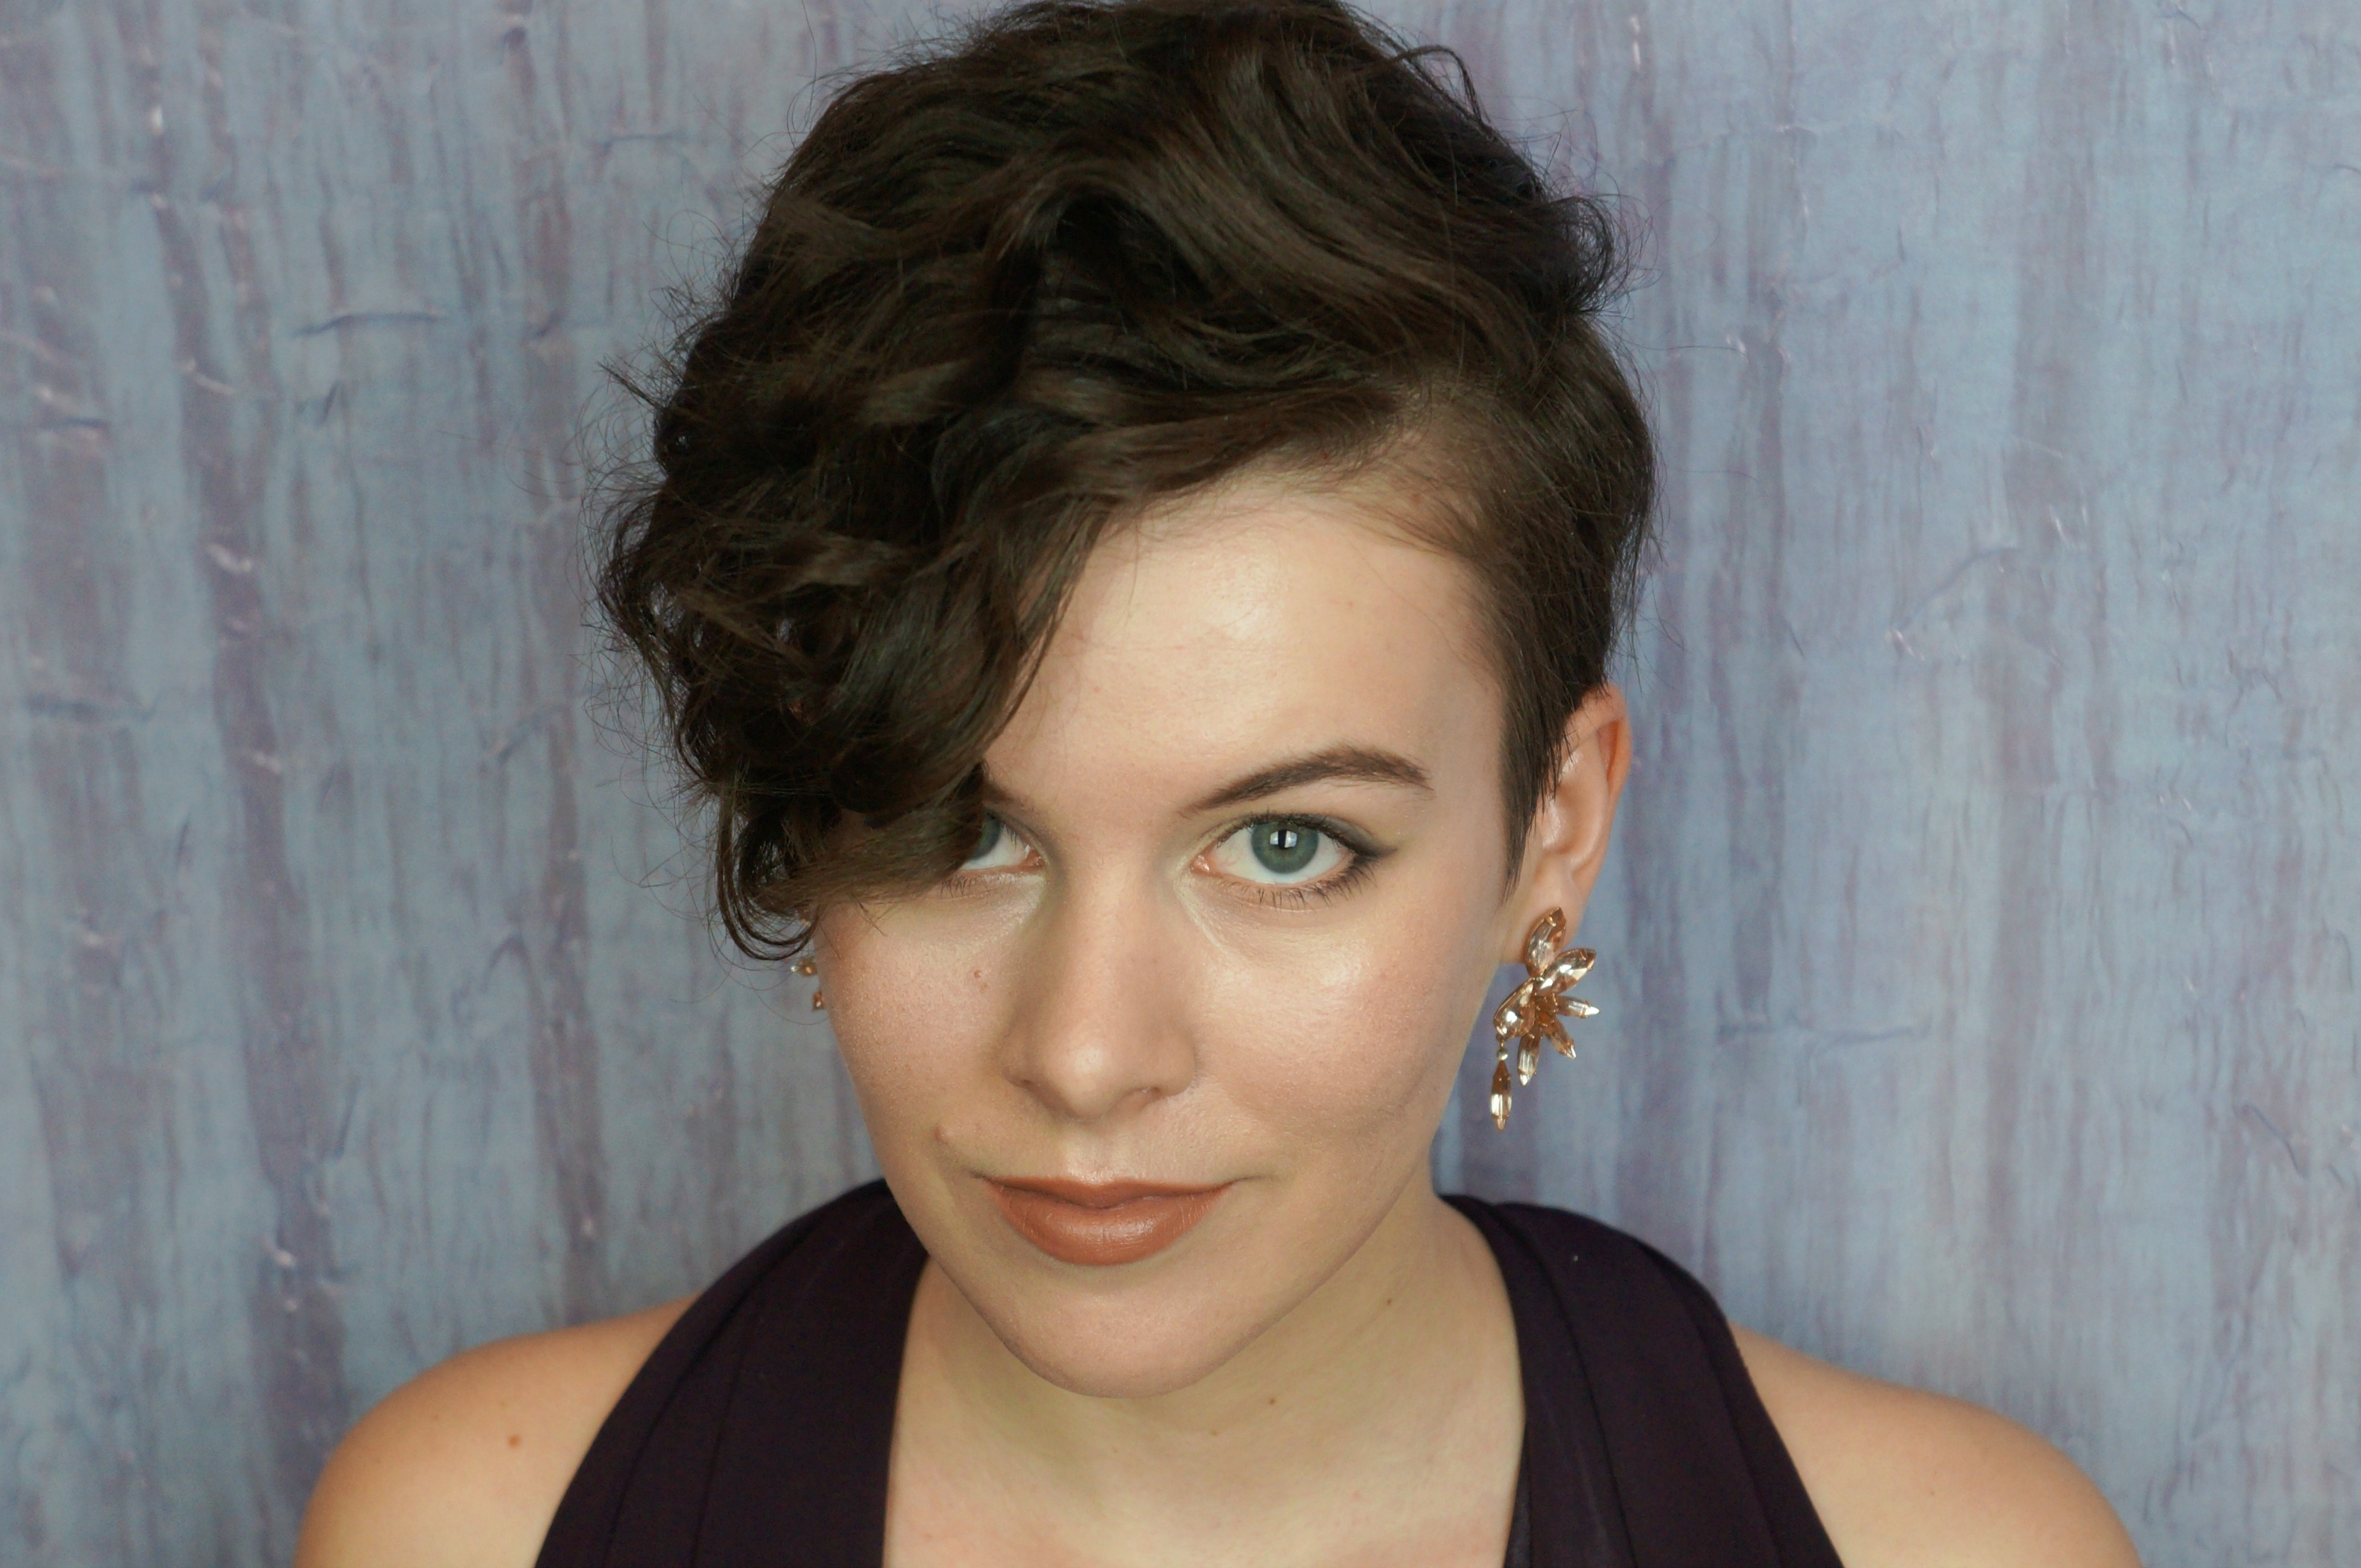 4 Short Hairstyles For Prom That Prove Pixie Cuts Can Be Extremely Glam Regarding Prom Short Hairstyles (View 9 of 25)